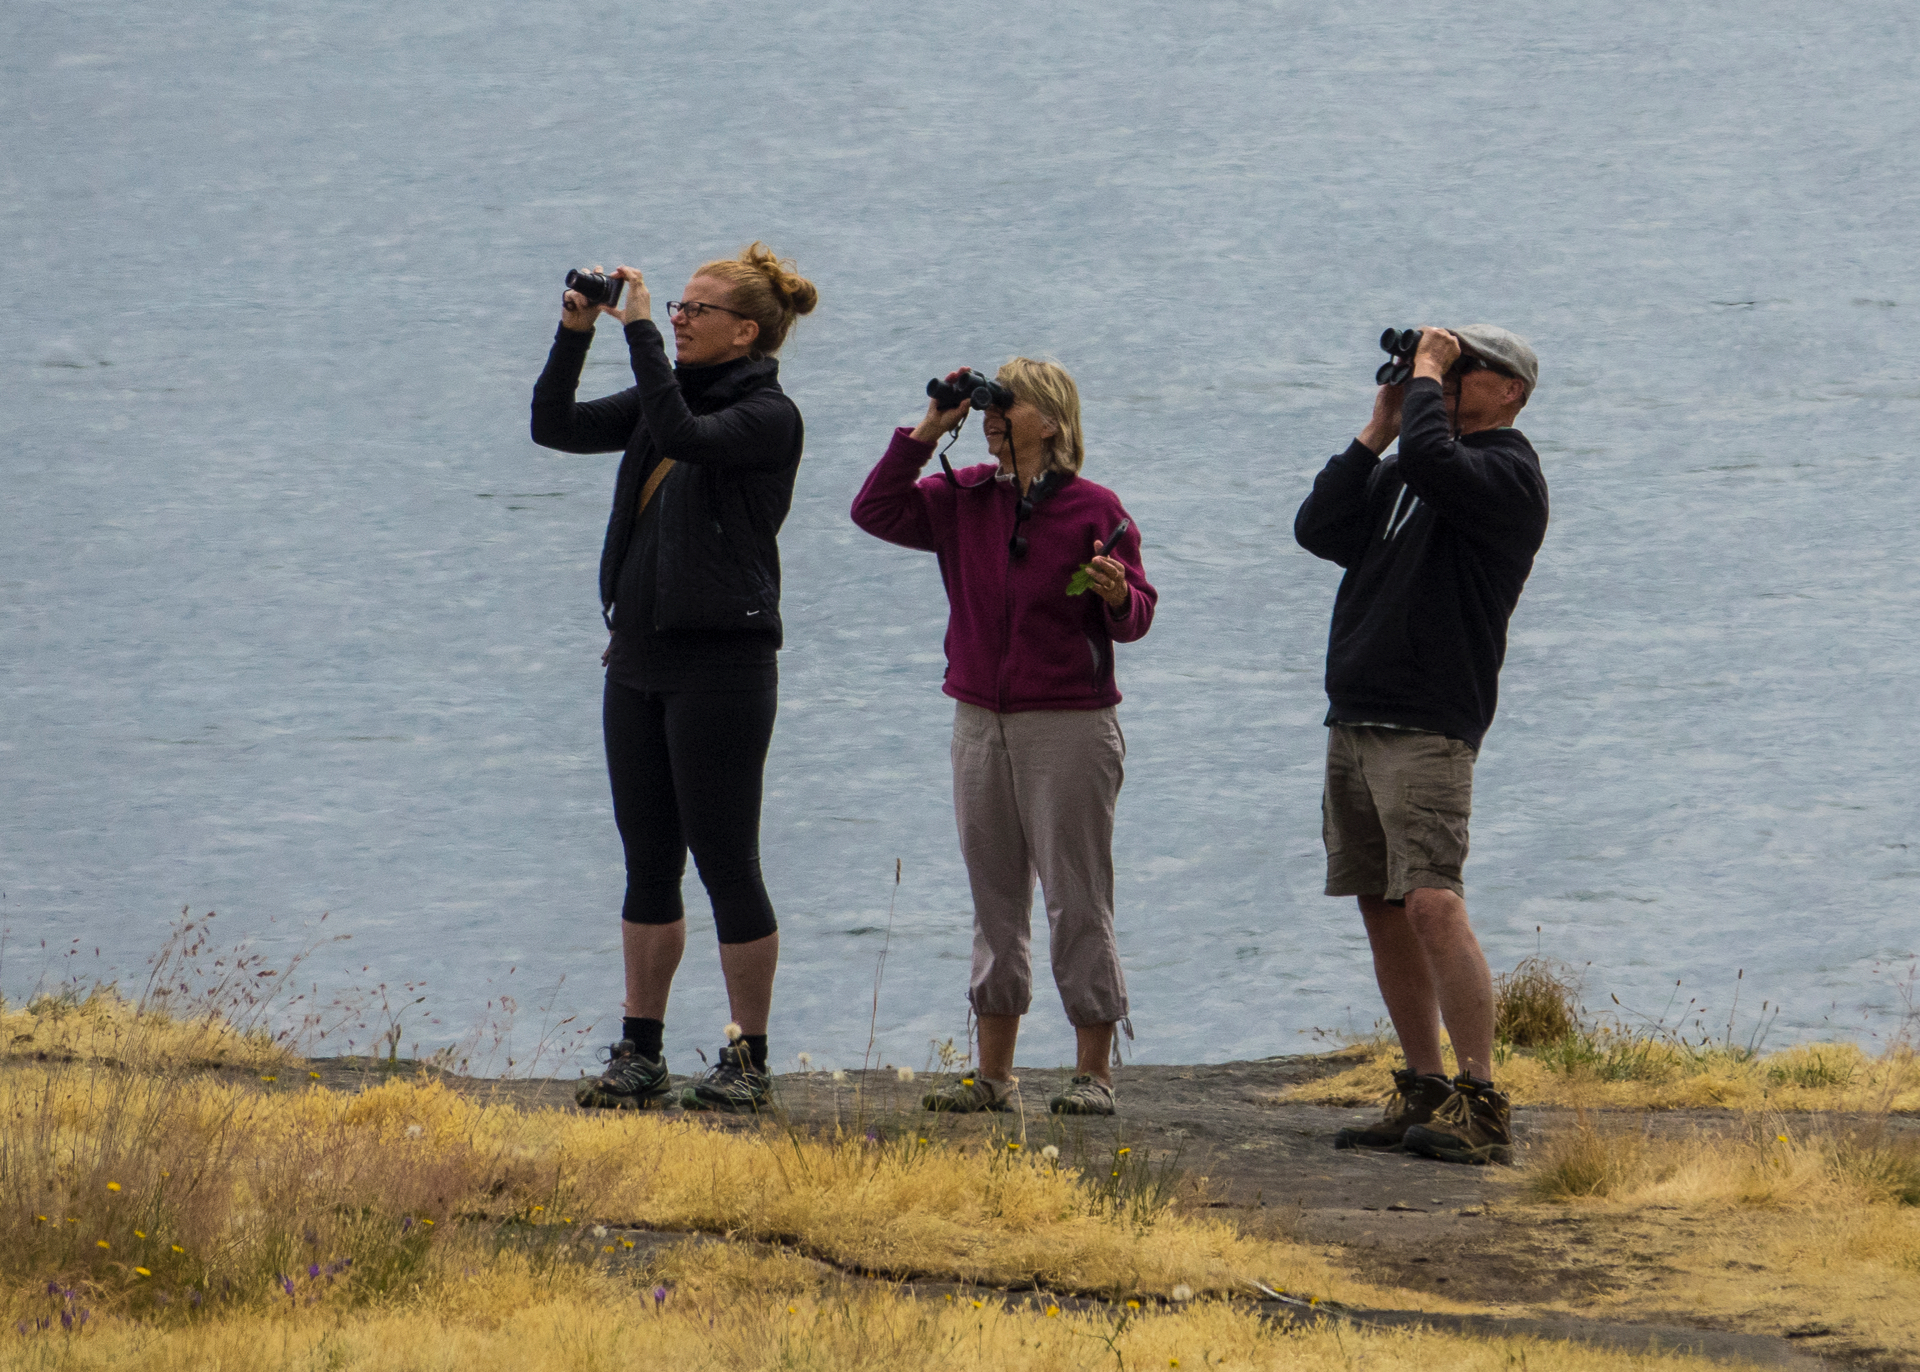 """The Birdwatchers"" - My favourite picture from the weekend - the birds don't stand a chance!"